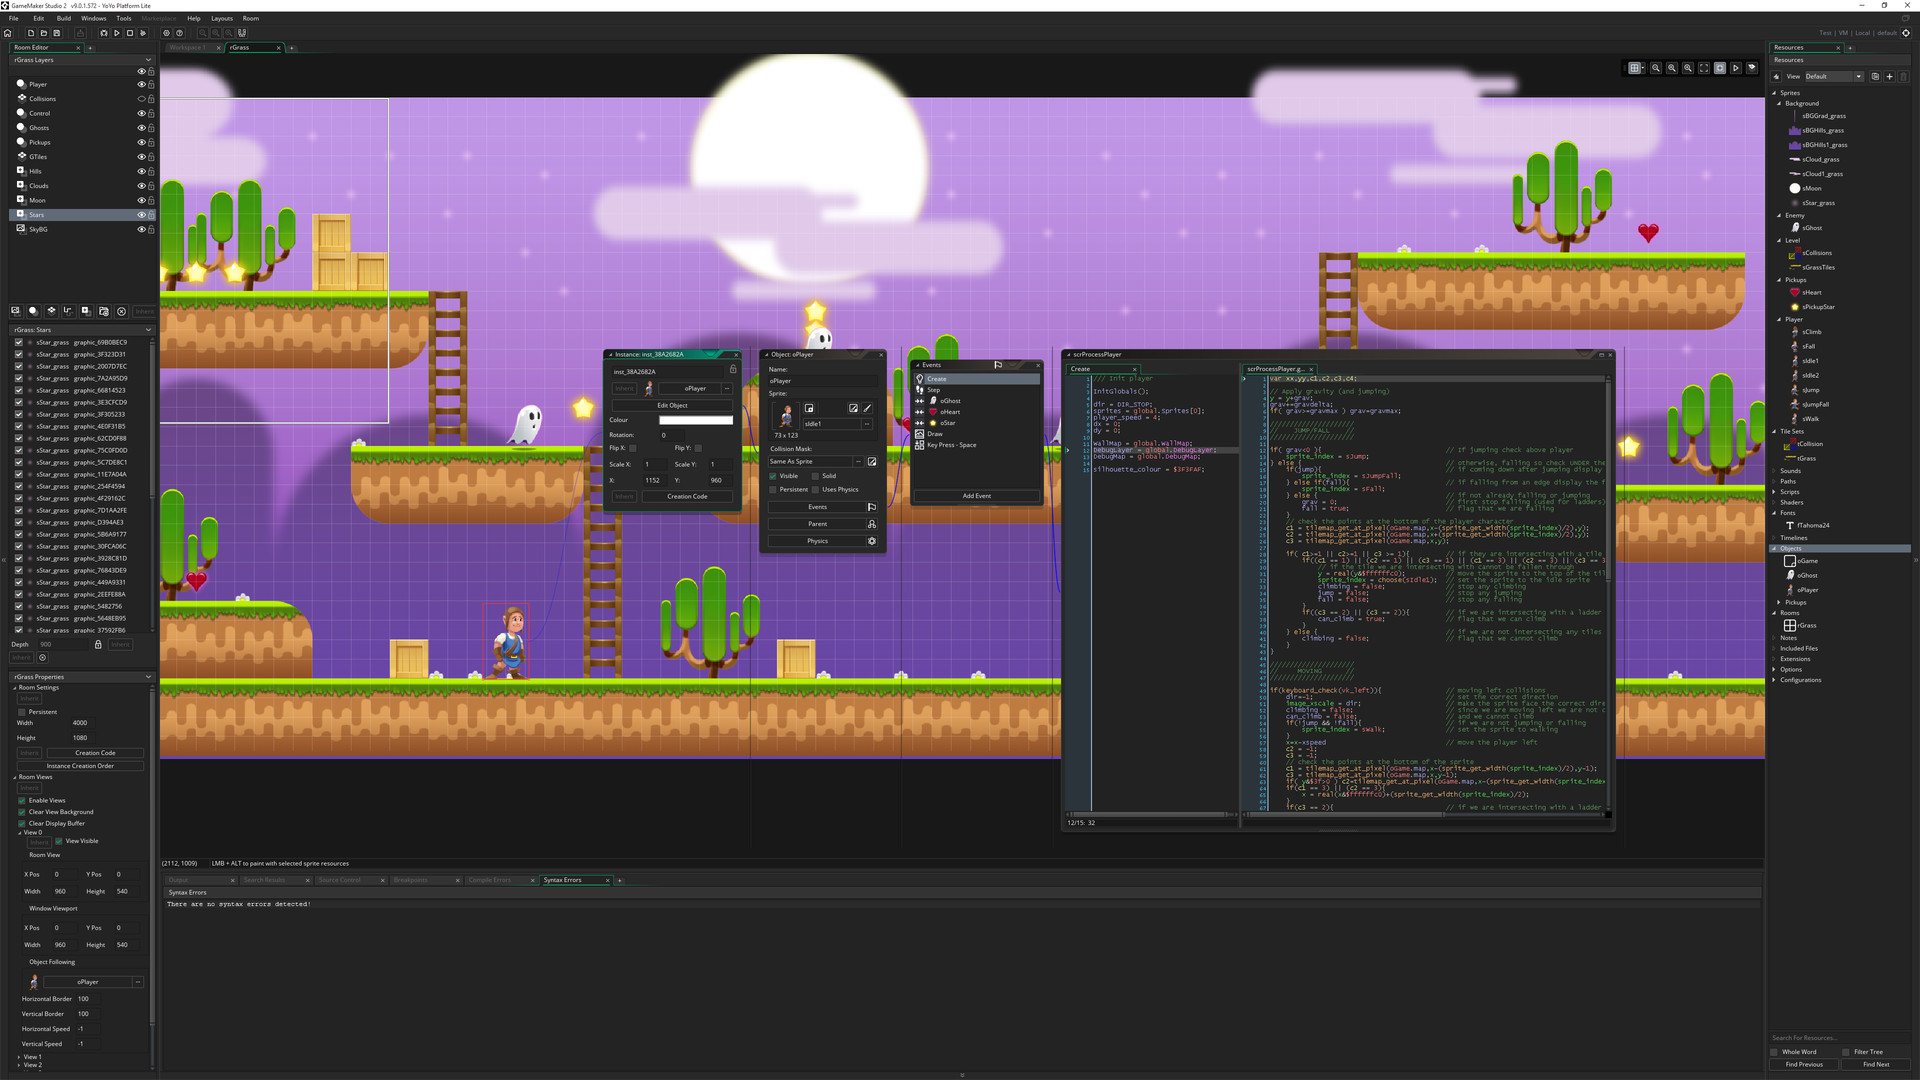 Gamemaker studio 2 mobile on steam pronofoot35fo Image collections